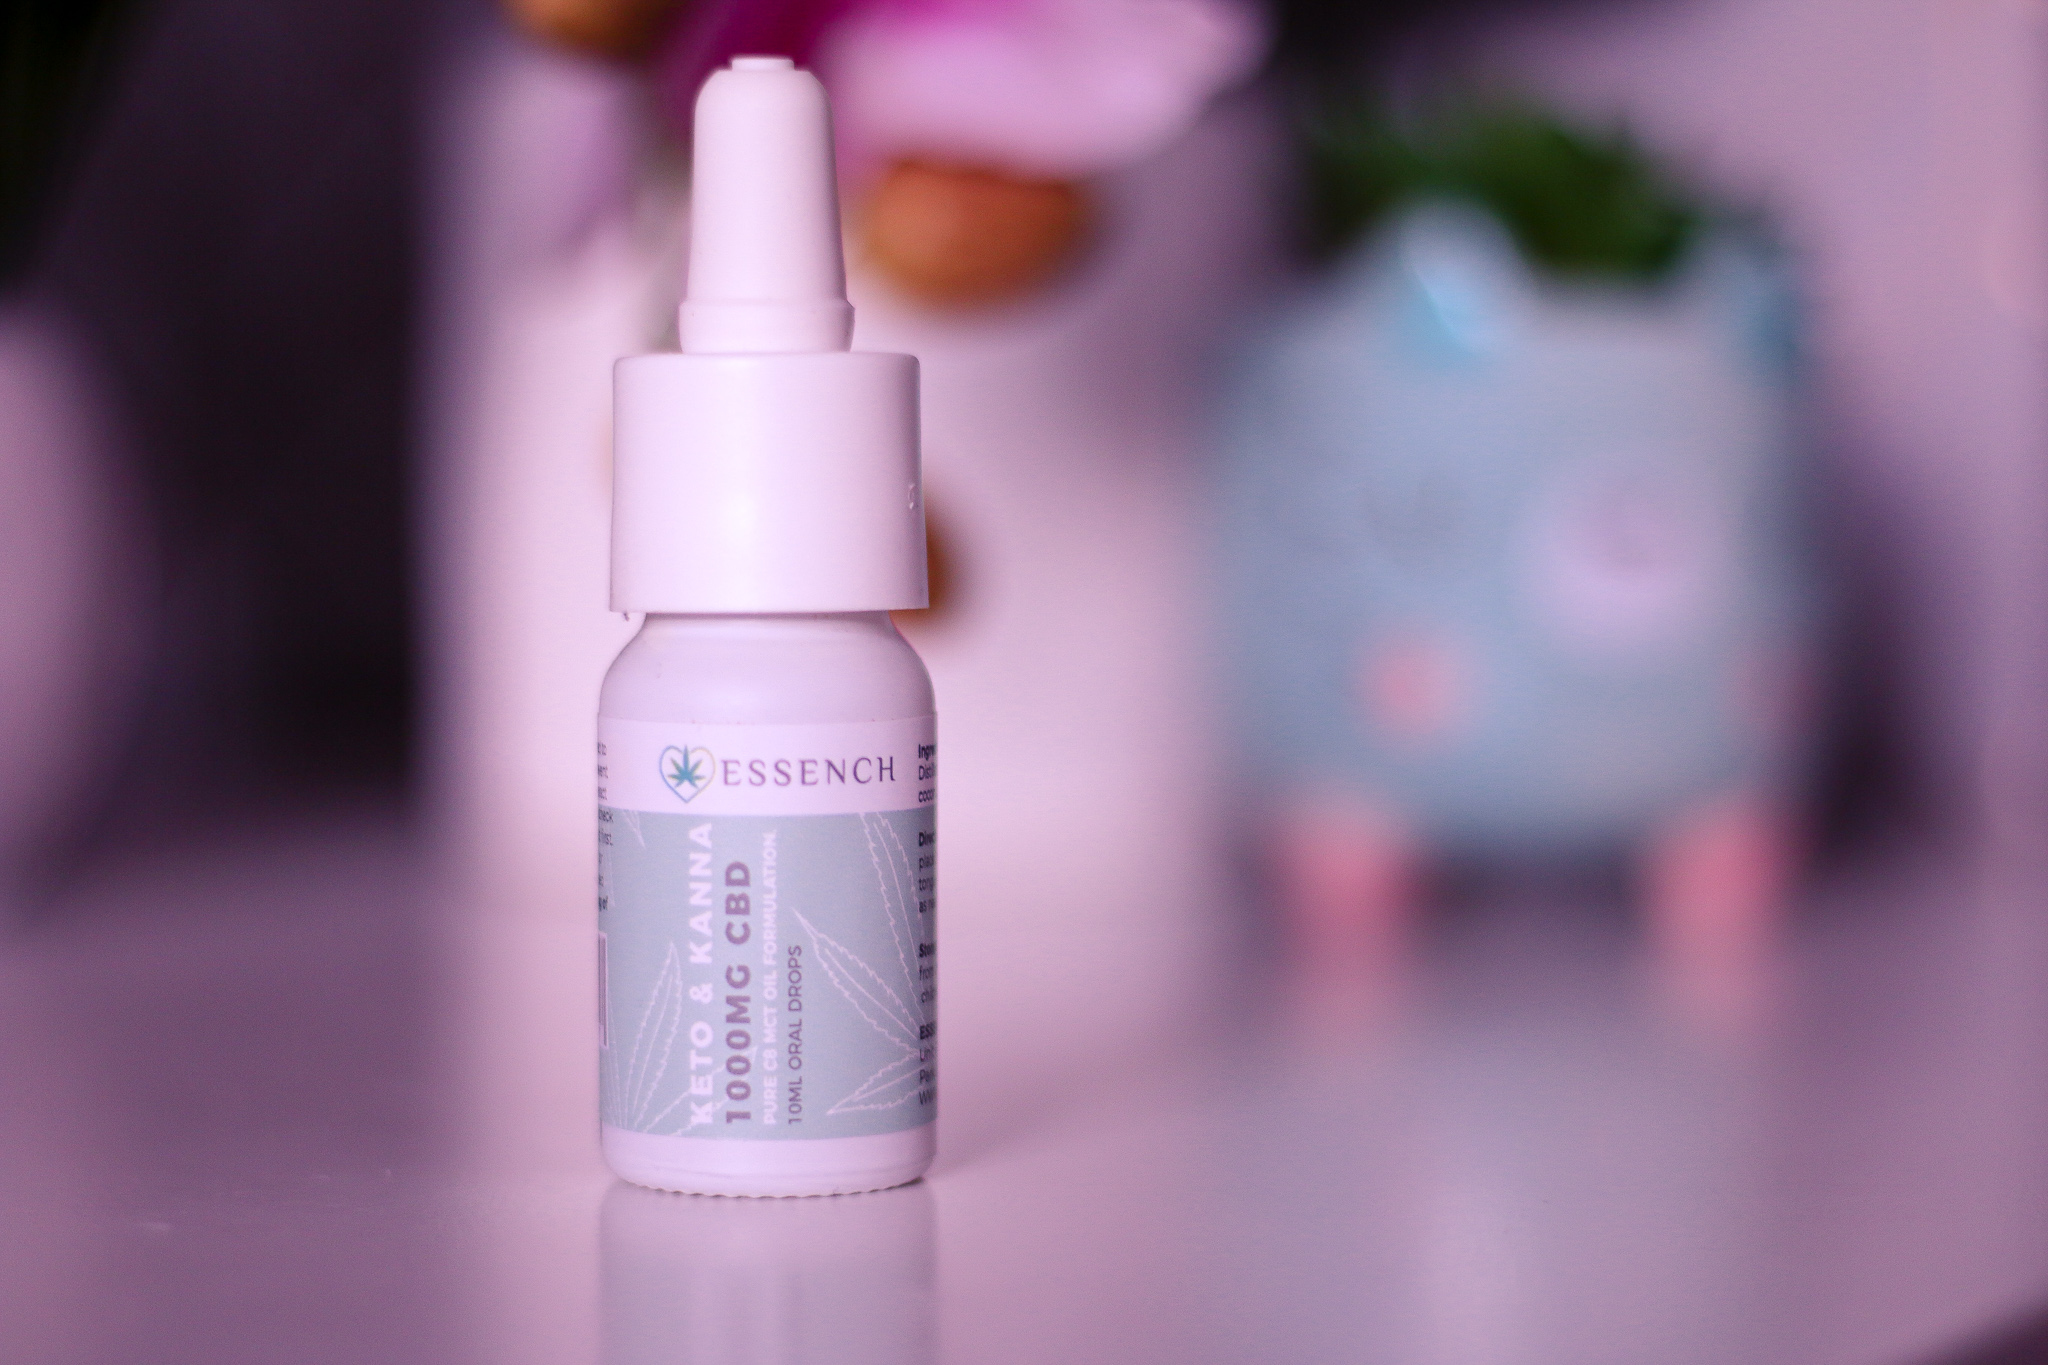 A close up photo of the Keto and Kanna 1000MG CBD oil from ESSENCH